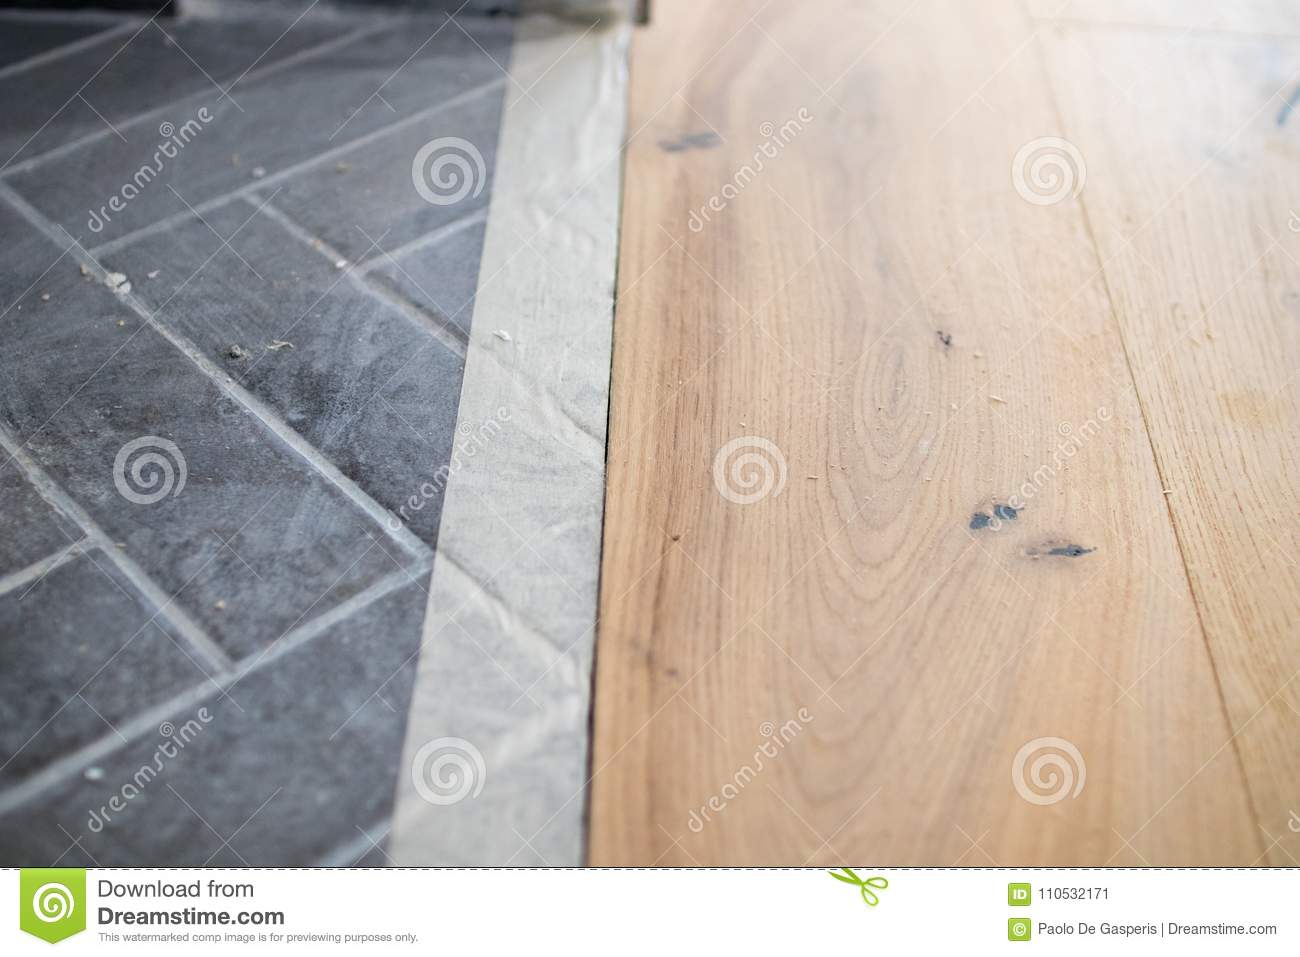 Renovation De Parquet Oak Colored Parquet During The Installation Compared With A Cement